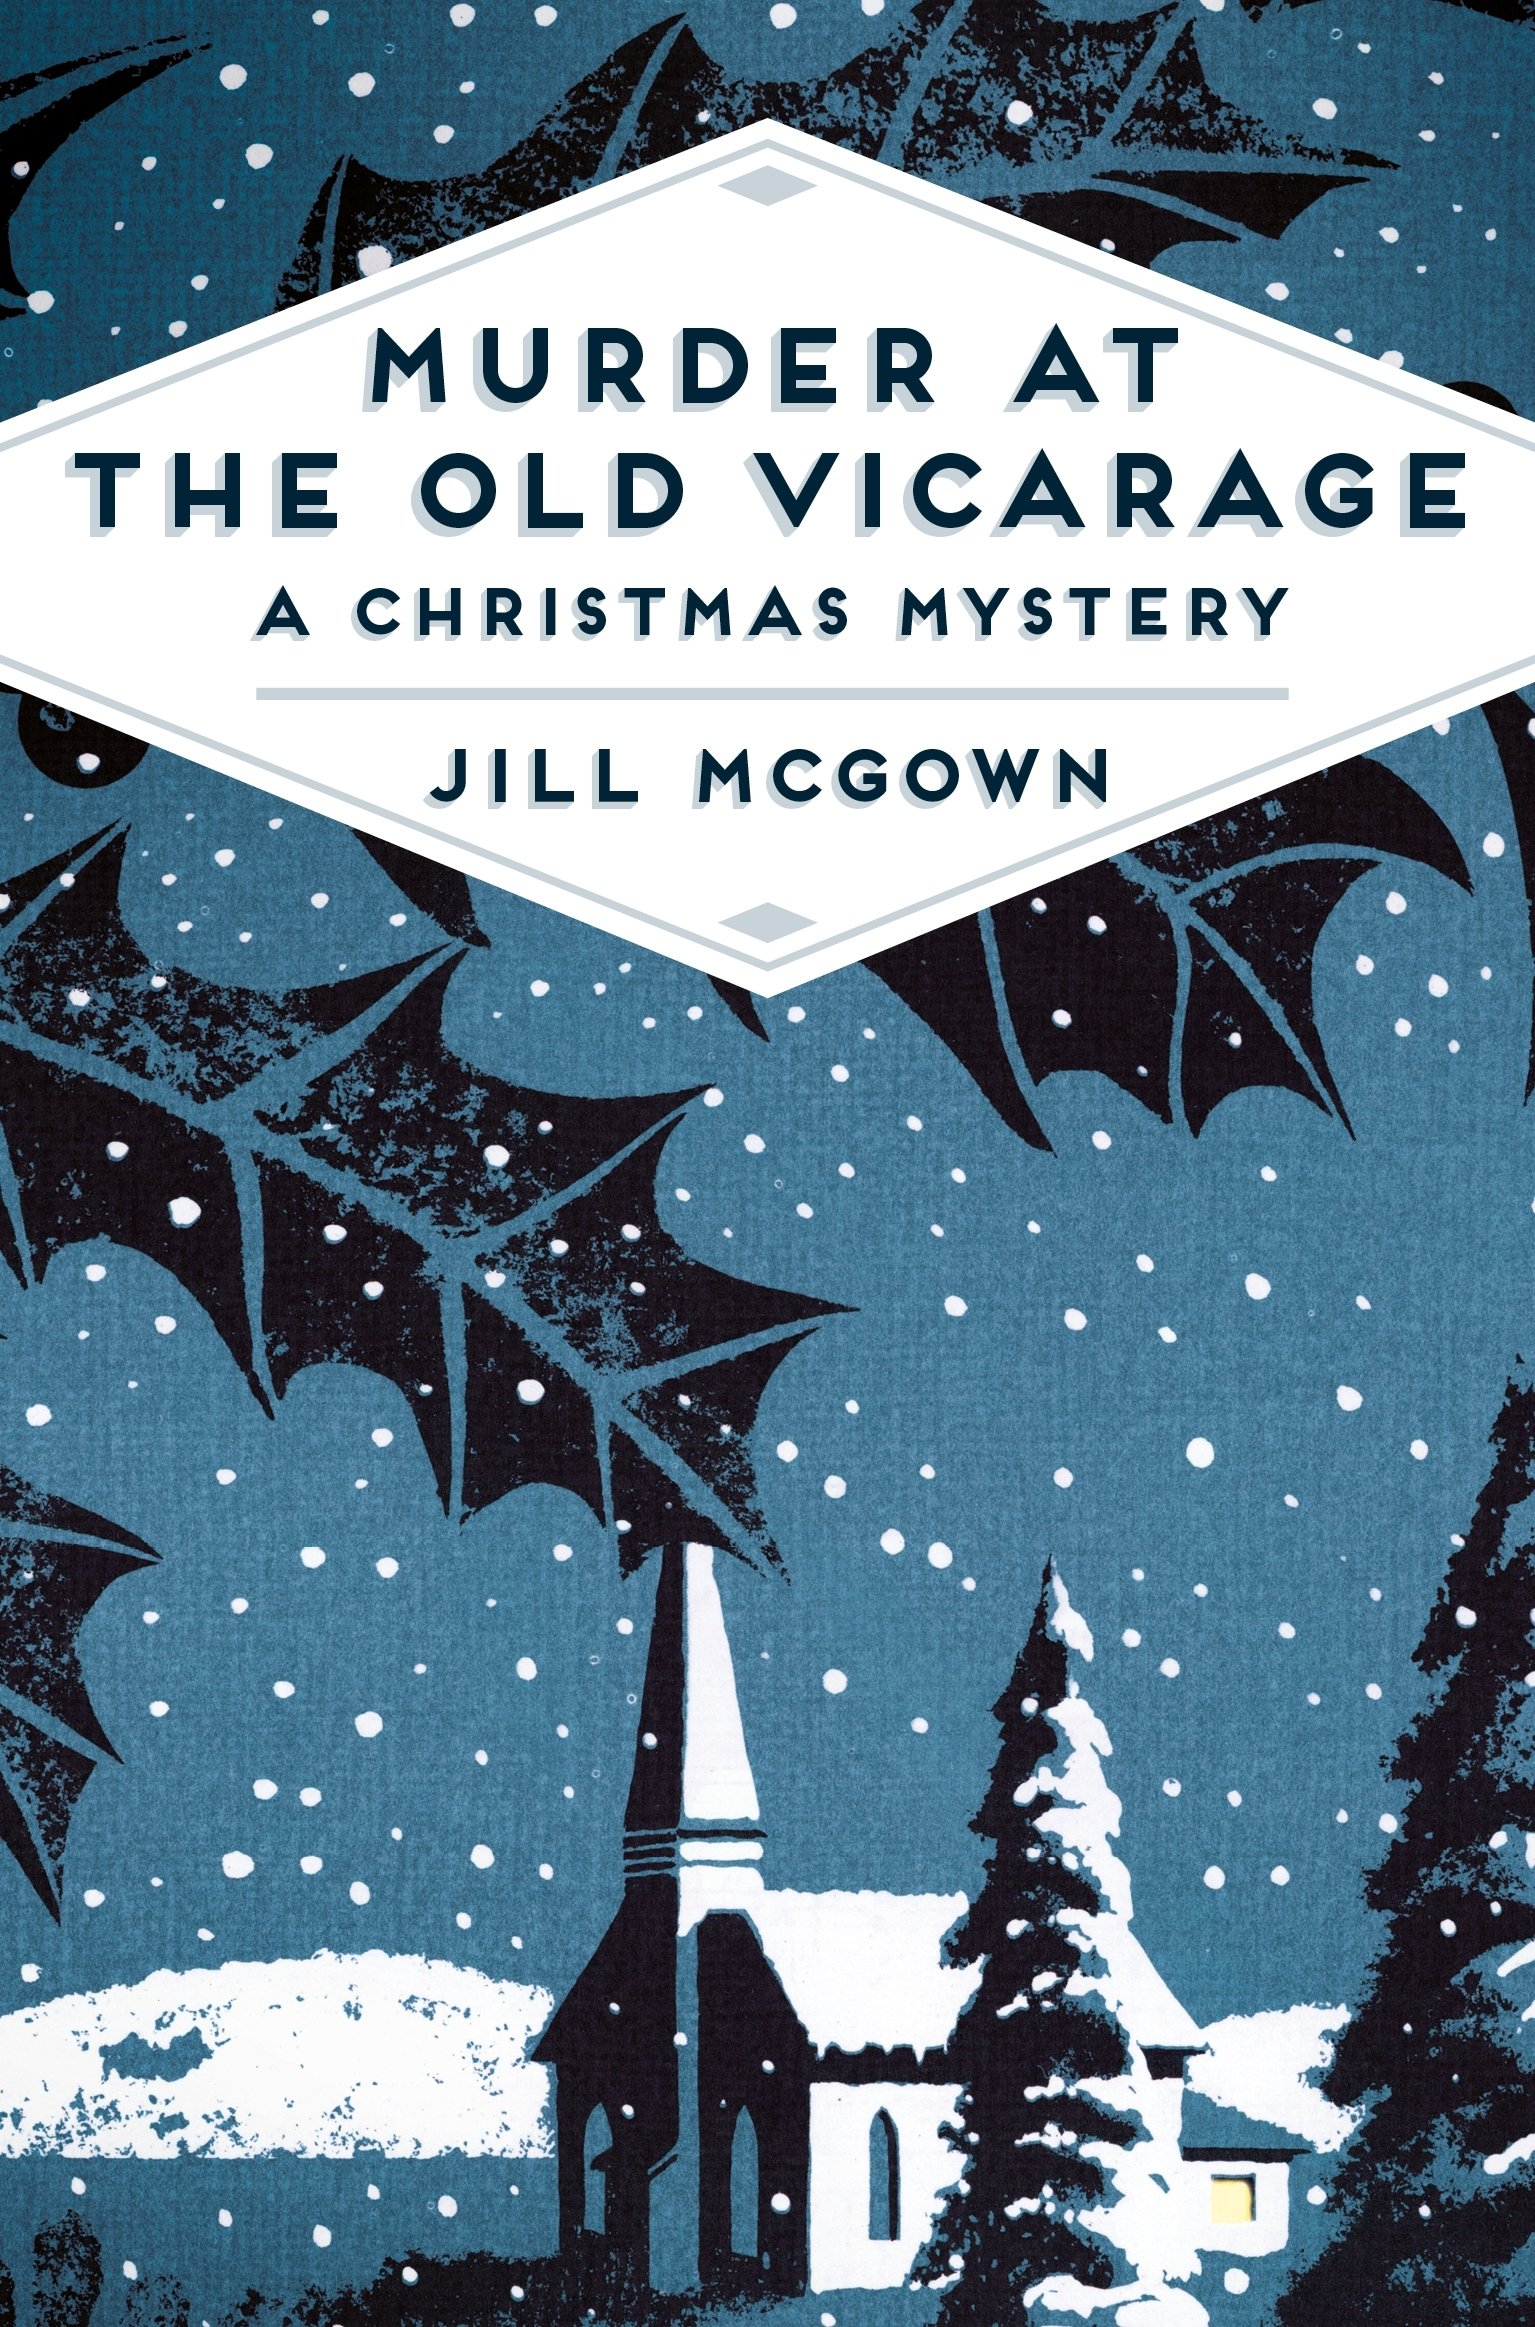 A Christmas Mystery.Murder At The Old Vicarage A Christmas Mystery Pan